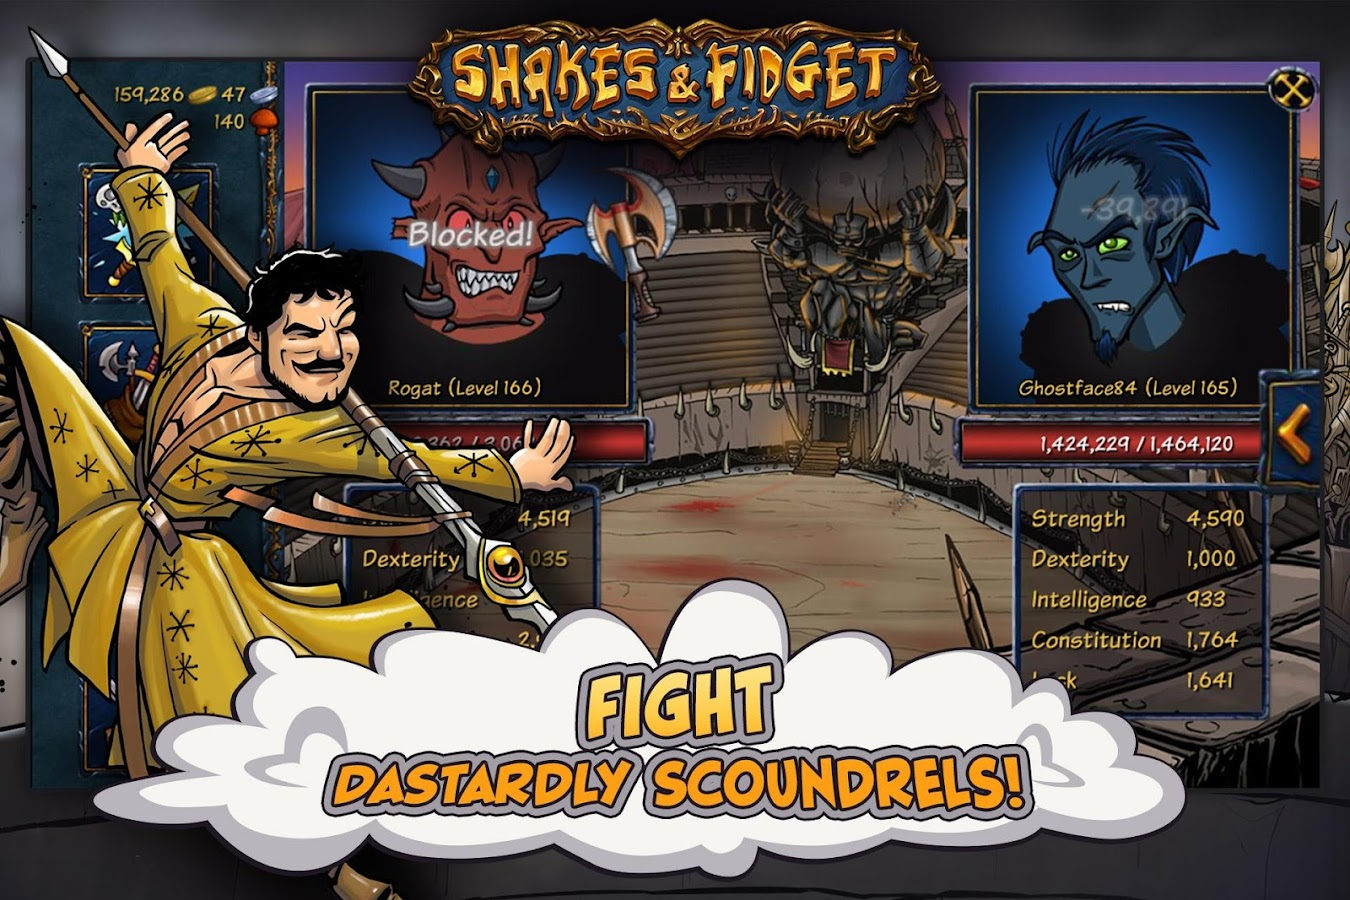 Shakes and Fidget Screenshot 4